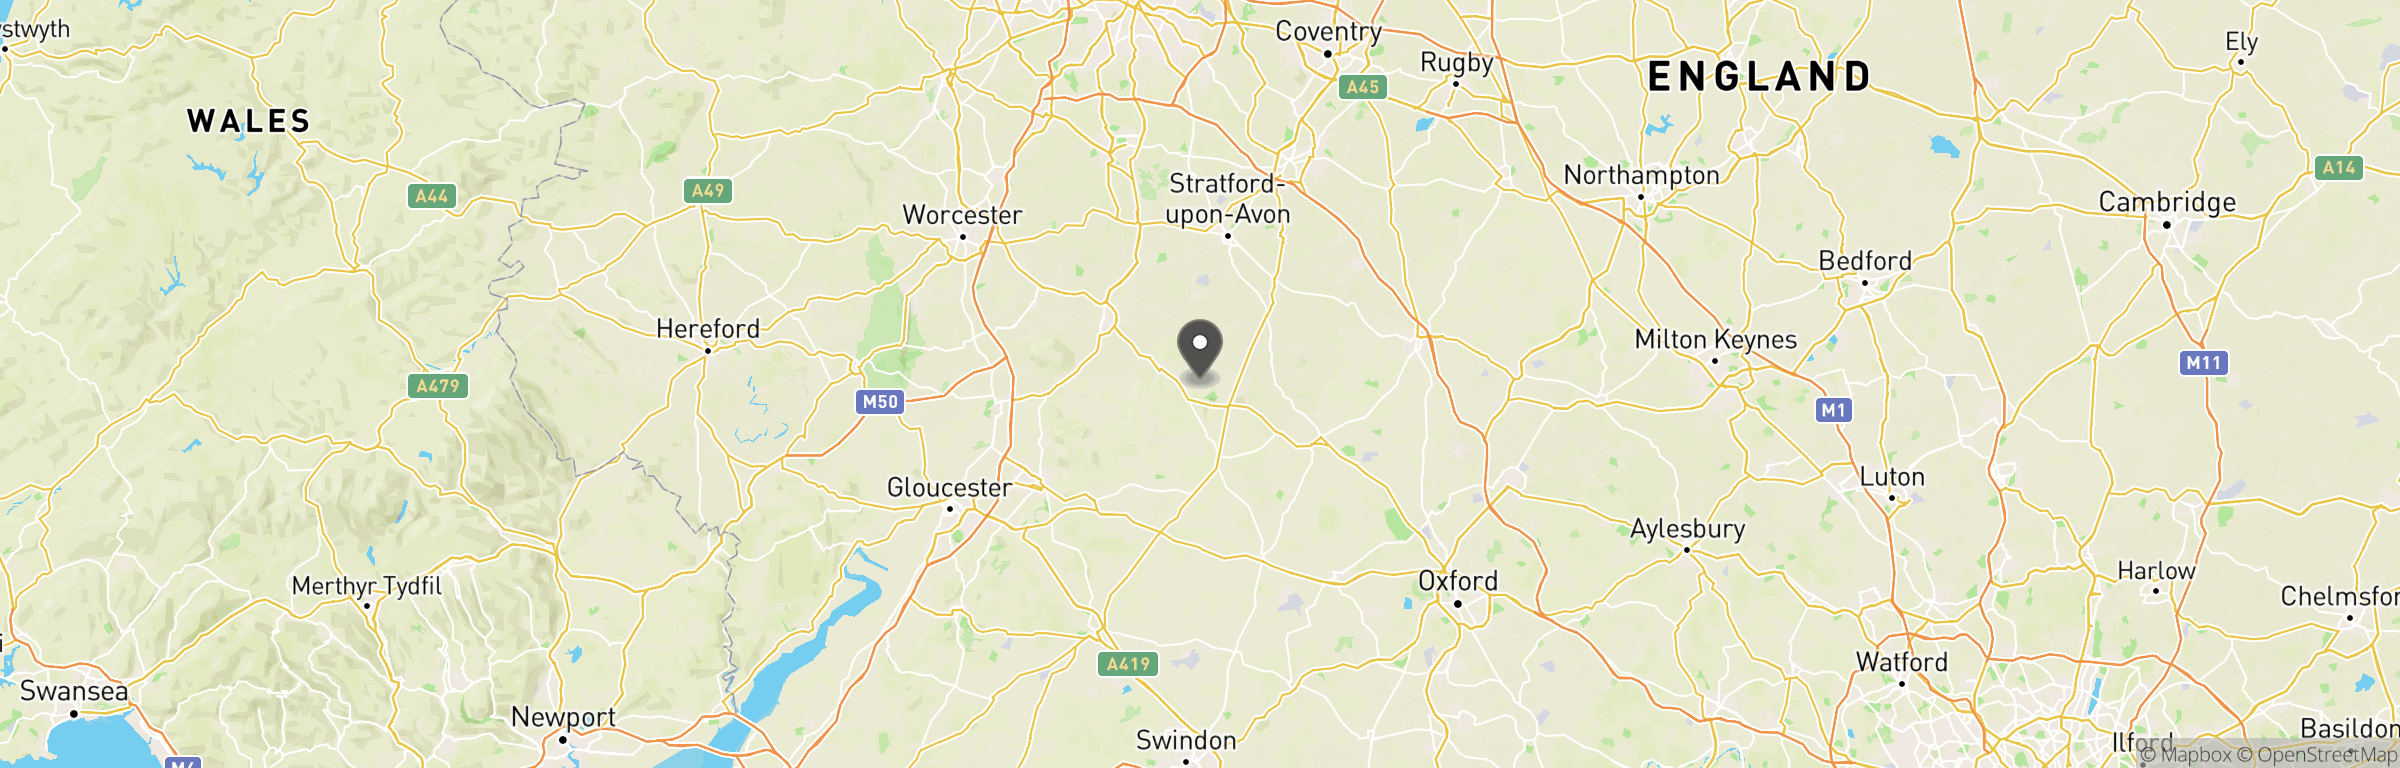 Location map of Cotswold Airsoft